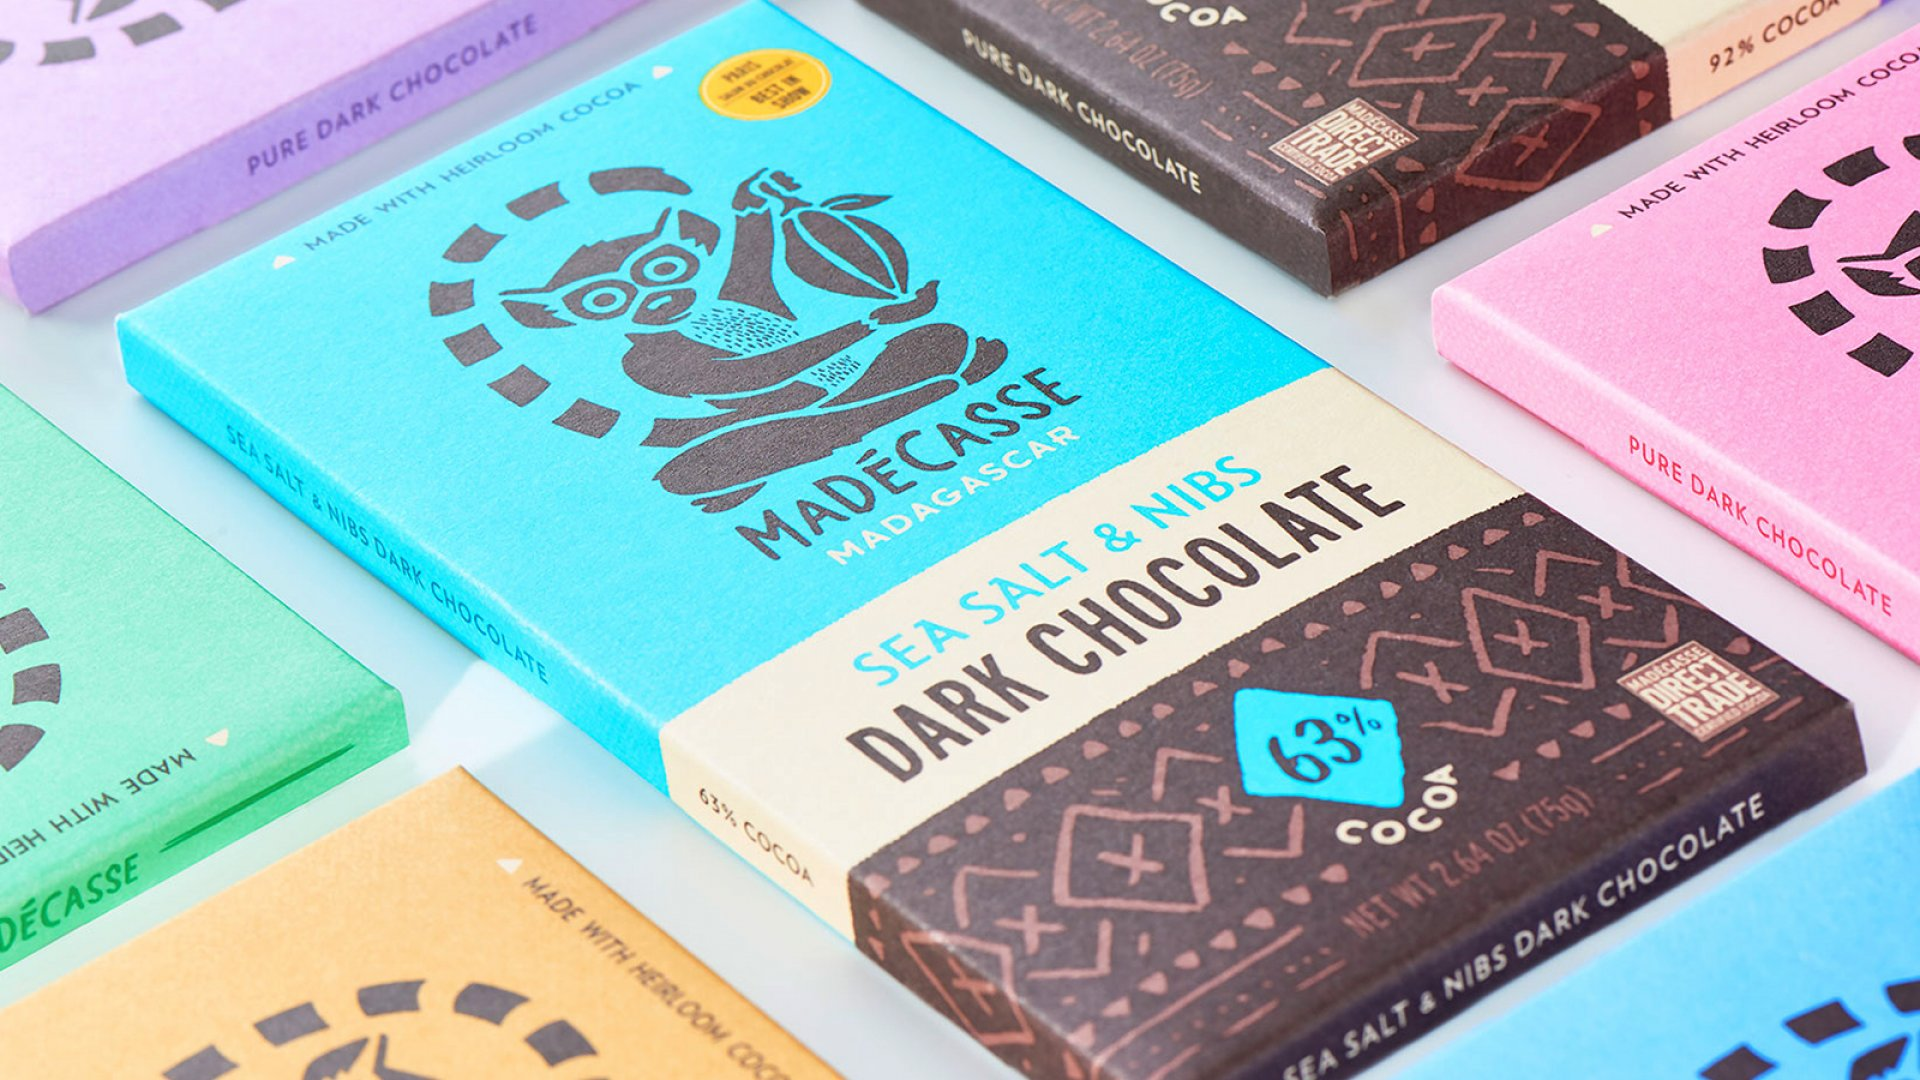 Chocolate Lovers, Pay Attention: This Company Gives Better Bars, Reduces Poverty